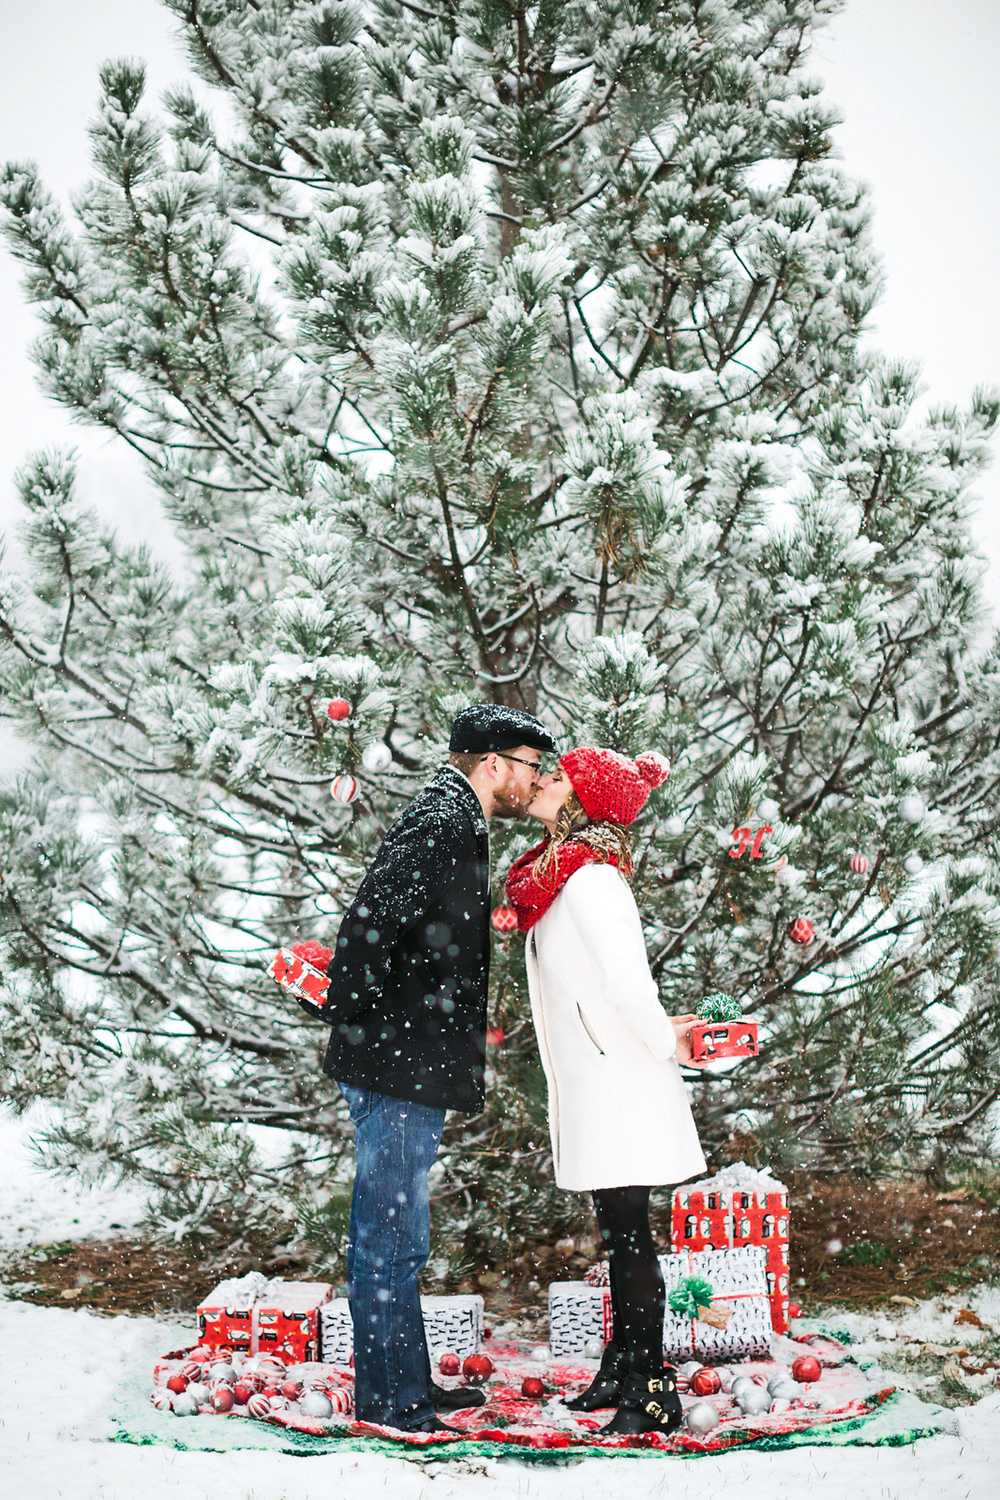 Oldani-Photography-St-Louis-Forest-Park-Engagement-Photos-Snow_20141116_16312630.jpg